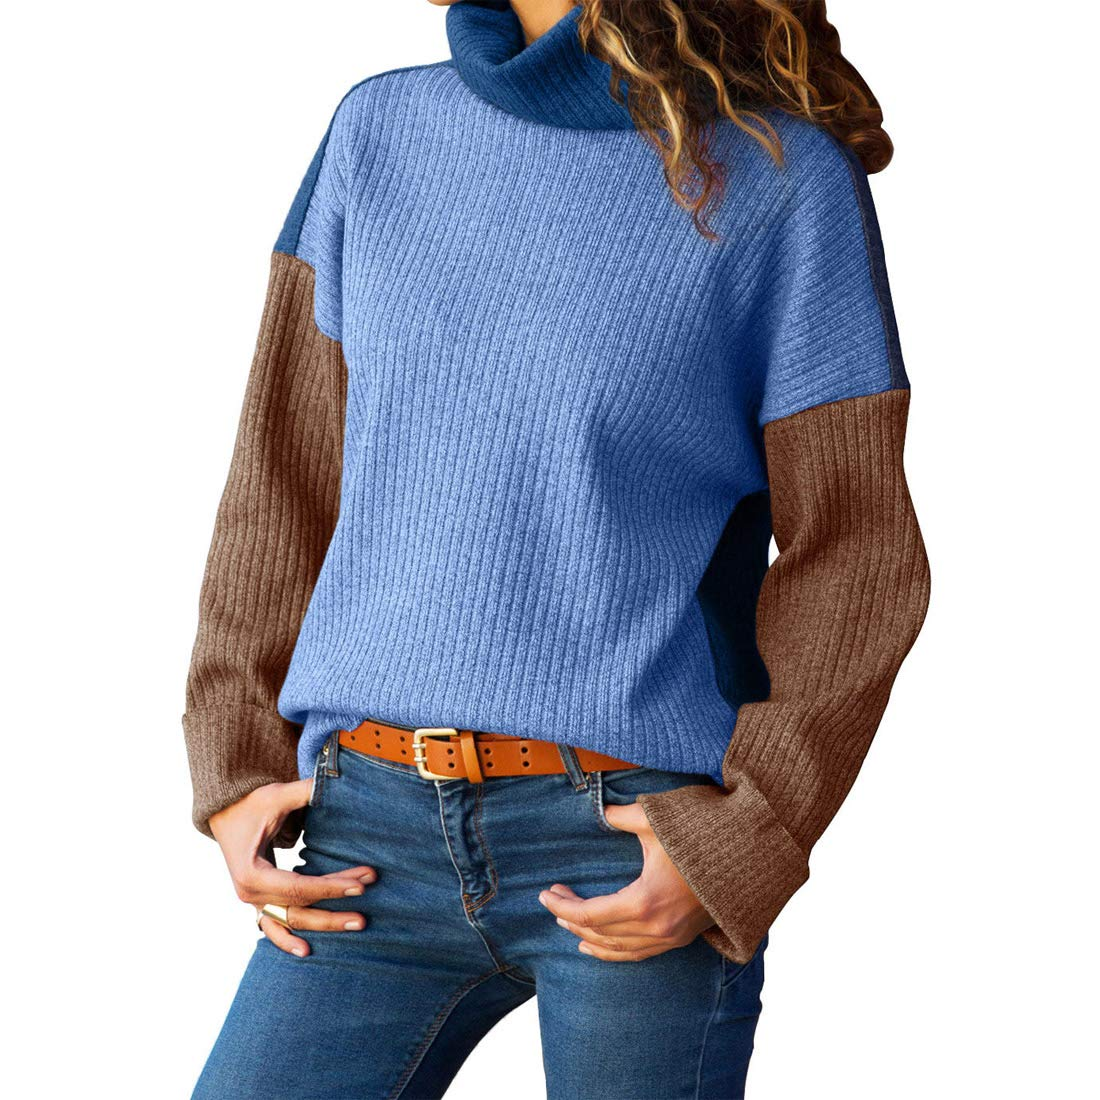 Ytwysj Women Blue Brown Color Patchwork Ribbed High Neck Sweater Knit Jumper Top Autumn Winter Outfit